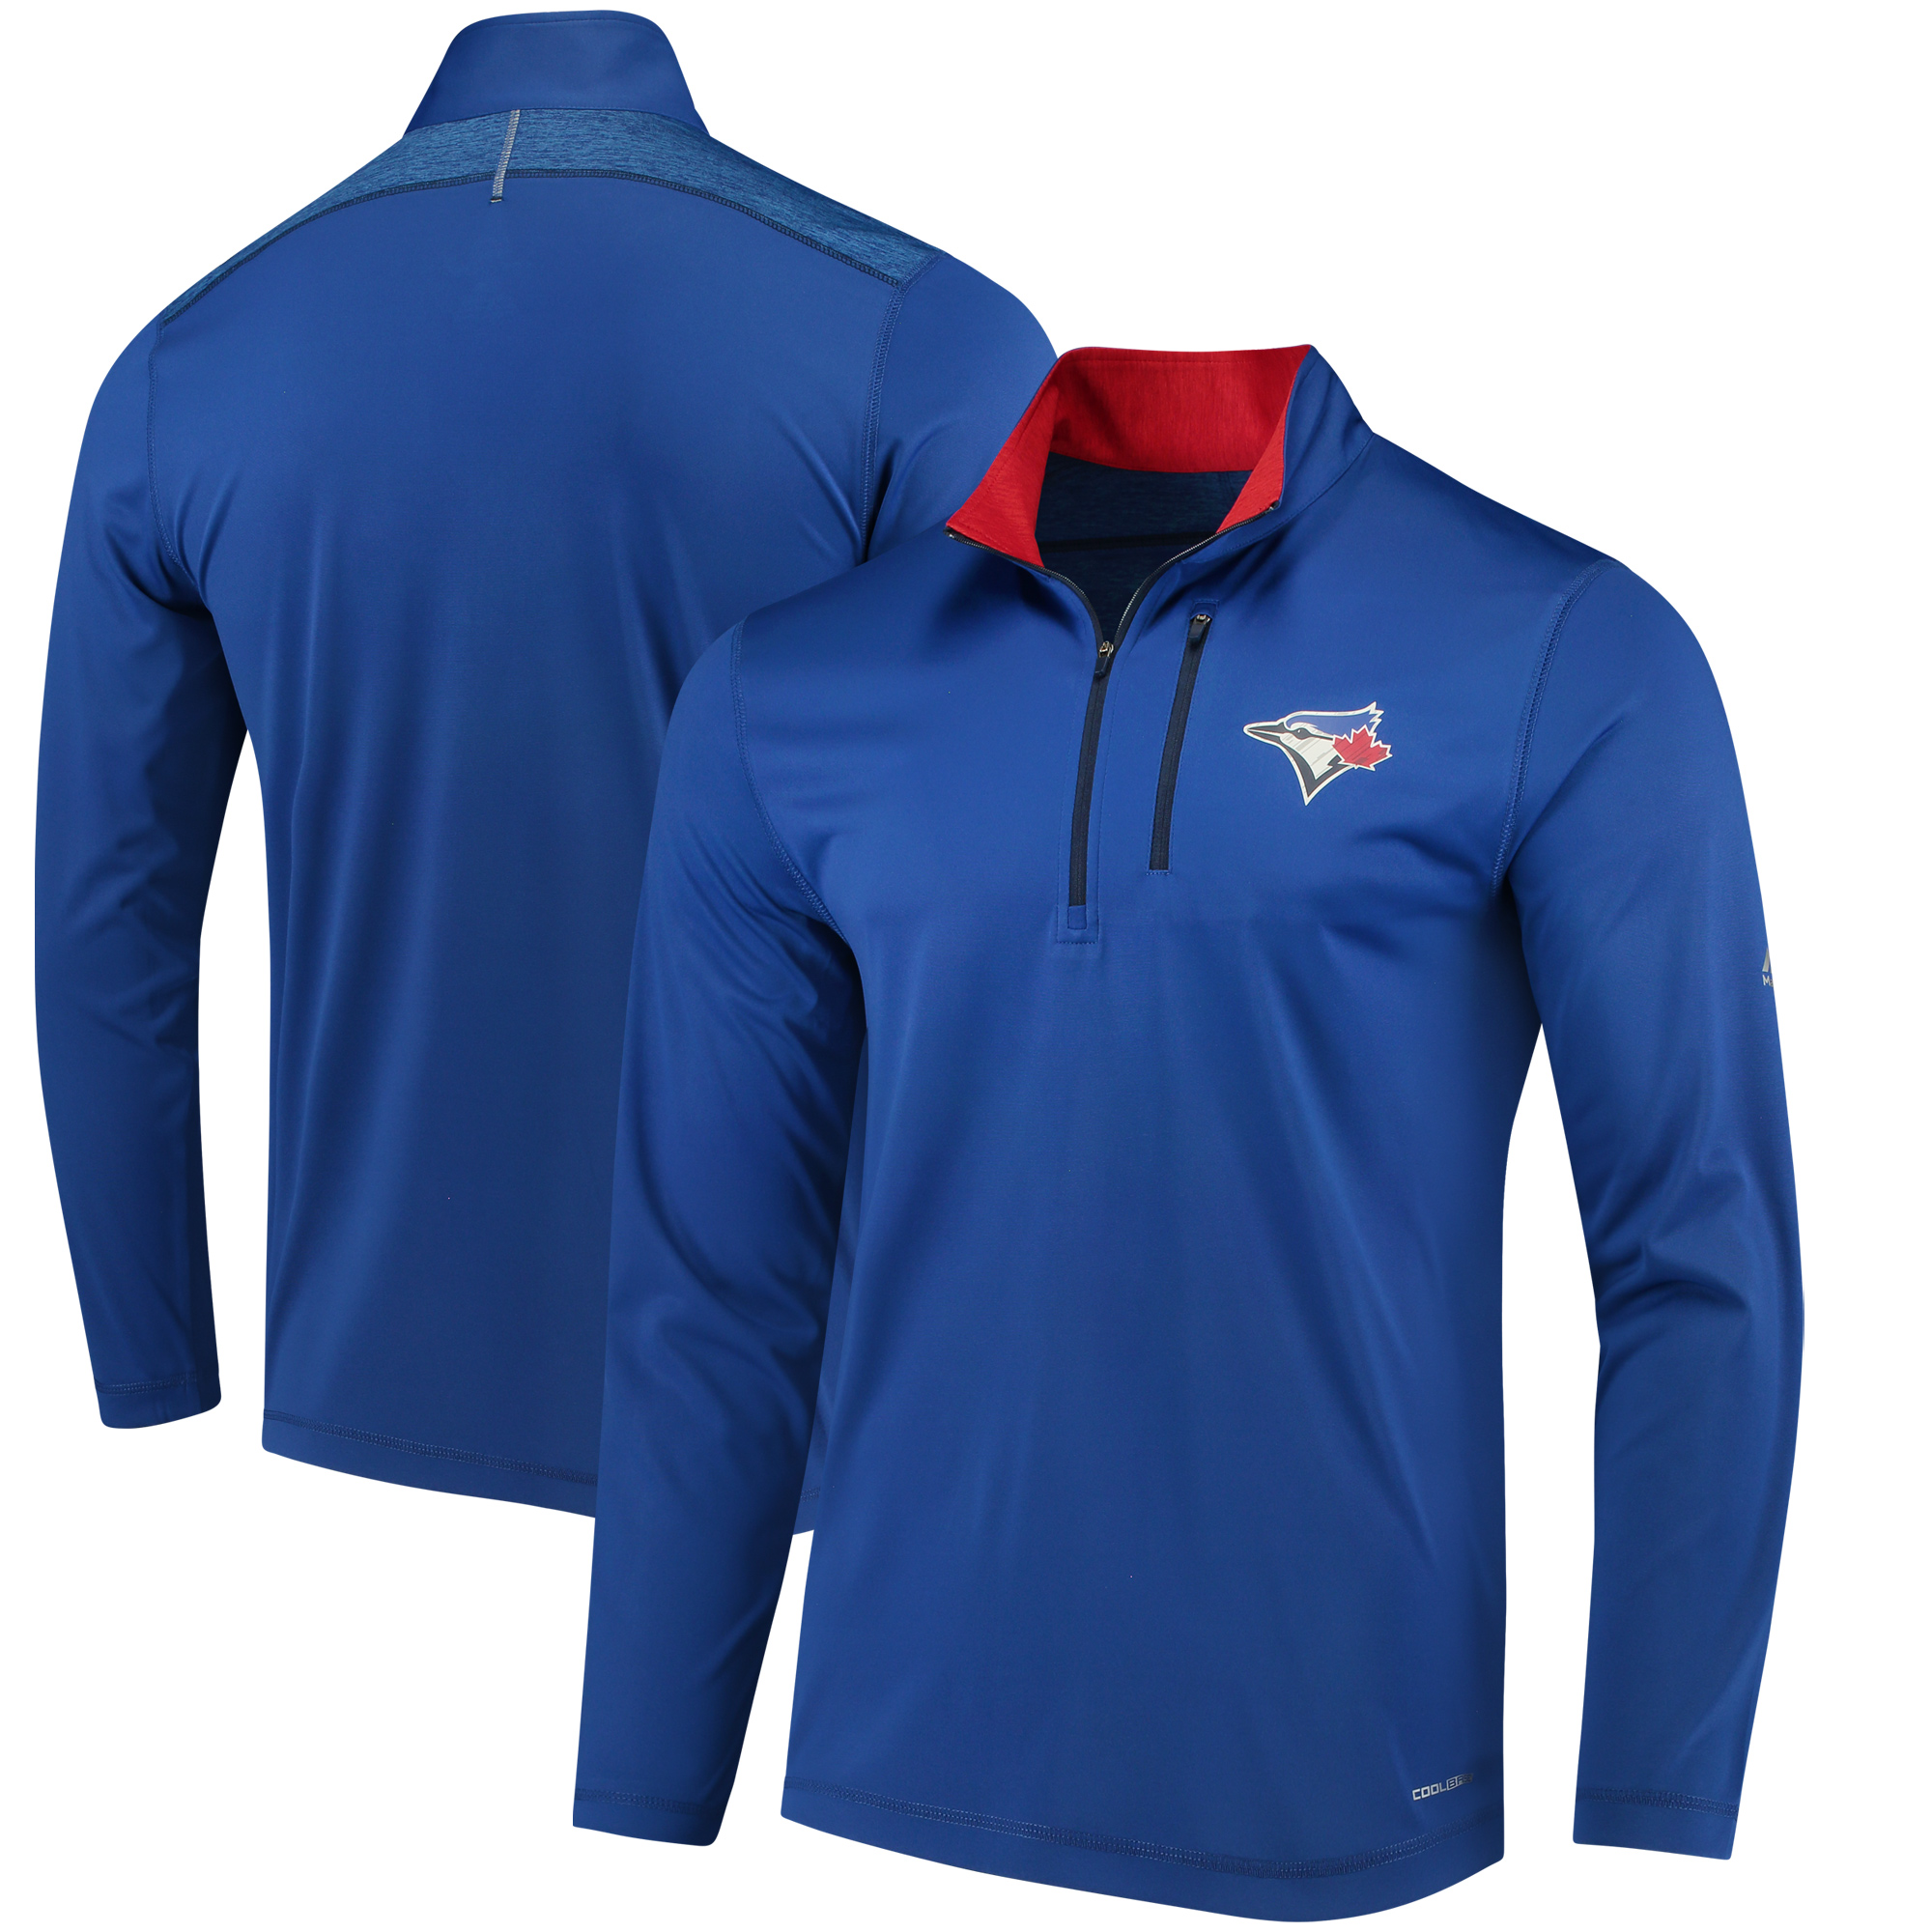 Toronto Blue Jays Majestic Half-Zip Pullover Top - Royal